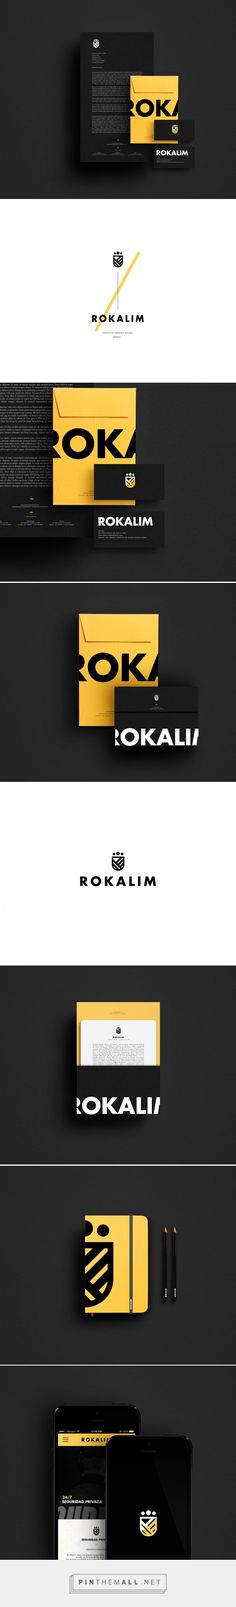 ROKALIM Branding by Malarte Studio | Fivestar Branding Agency – Design and Branding Agency & Curated Inspiration Gallery #design #designideas #designinspiration #branding